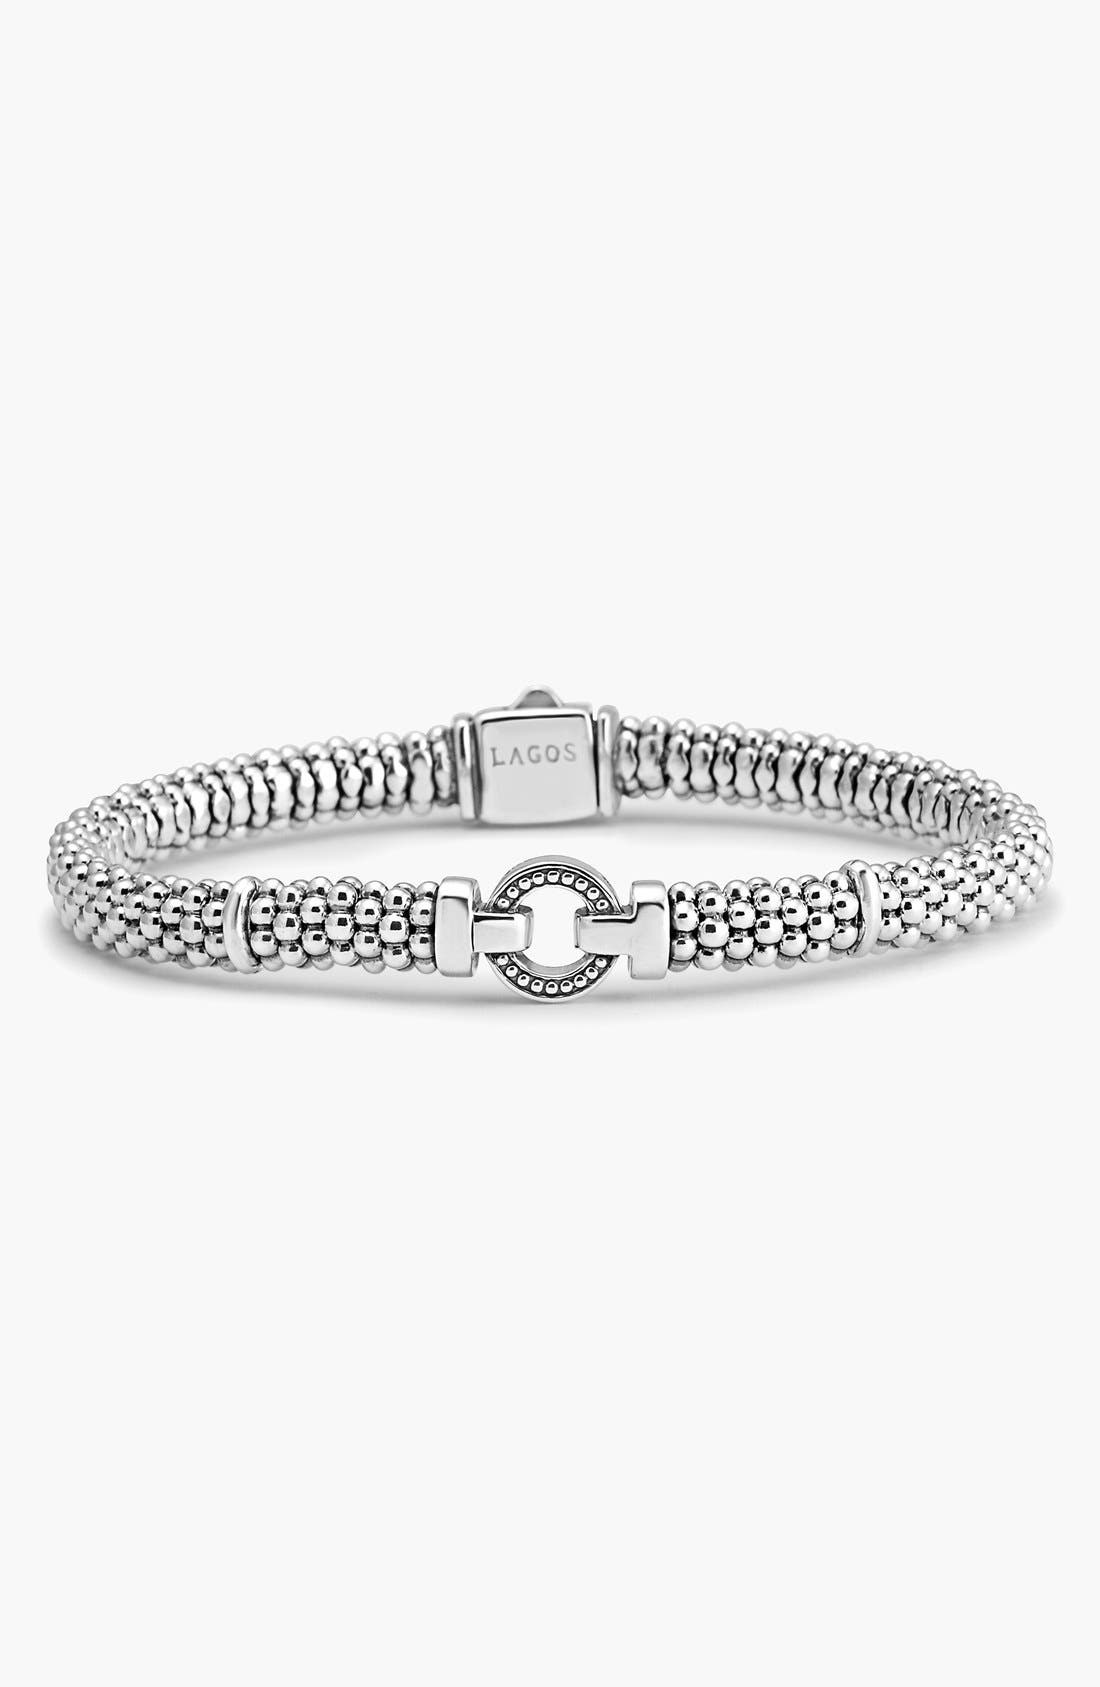 Enso Boxed Circle Station Caviar Rope Bracelet,                             Alternate thumbnail 8, color,                             STERLING SILVER